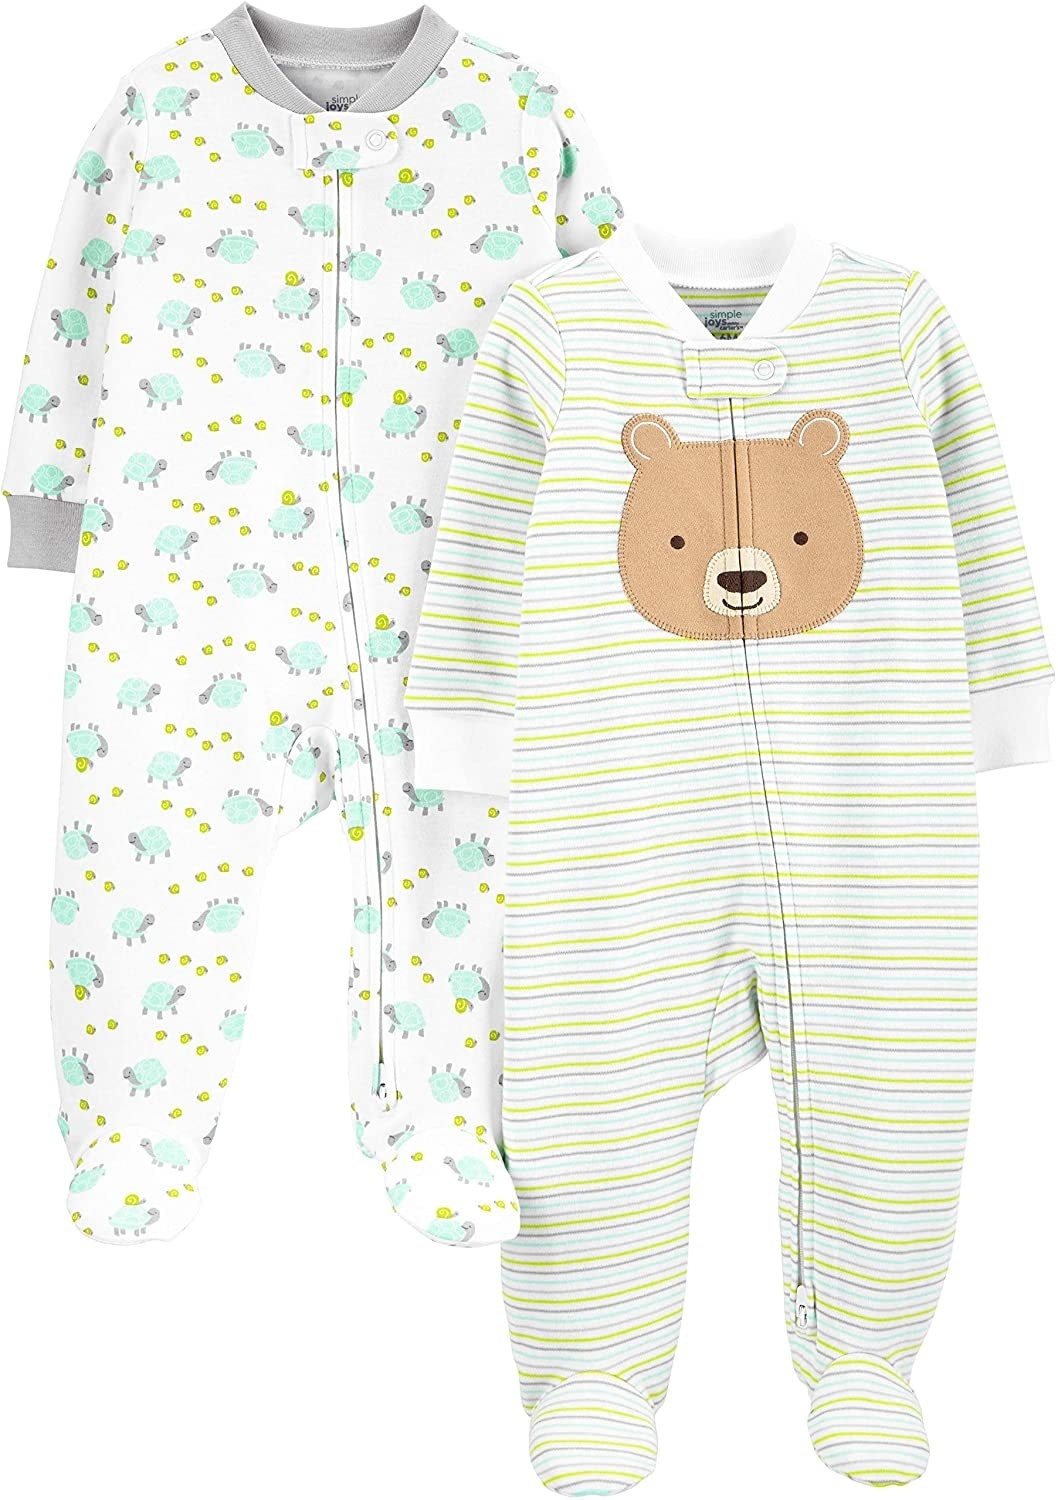 Two baby sleepers in bear and turtle print